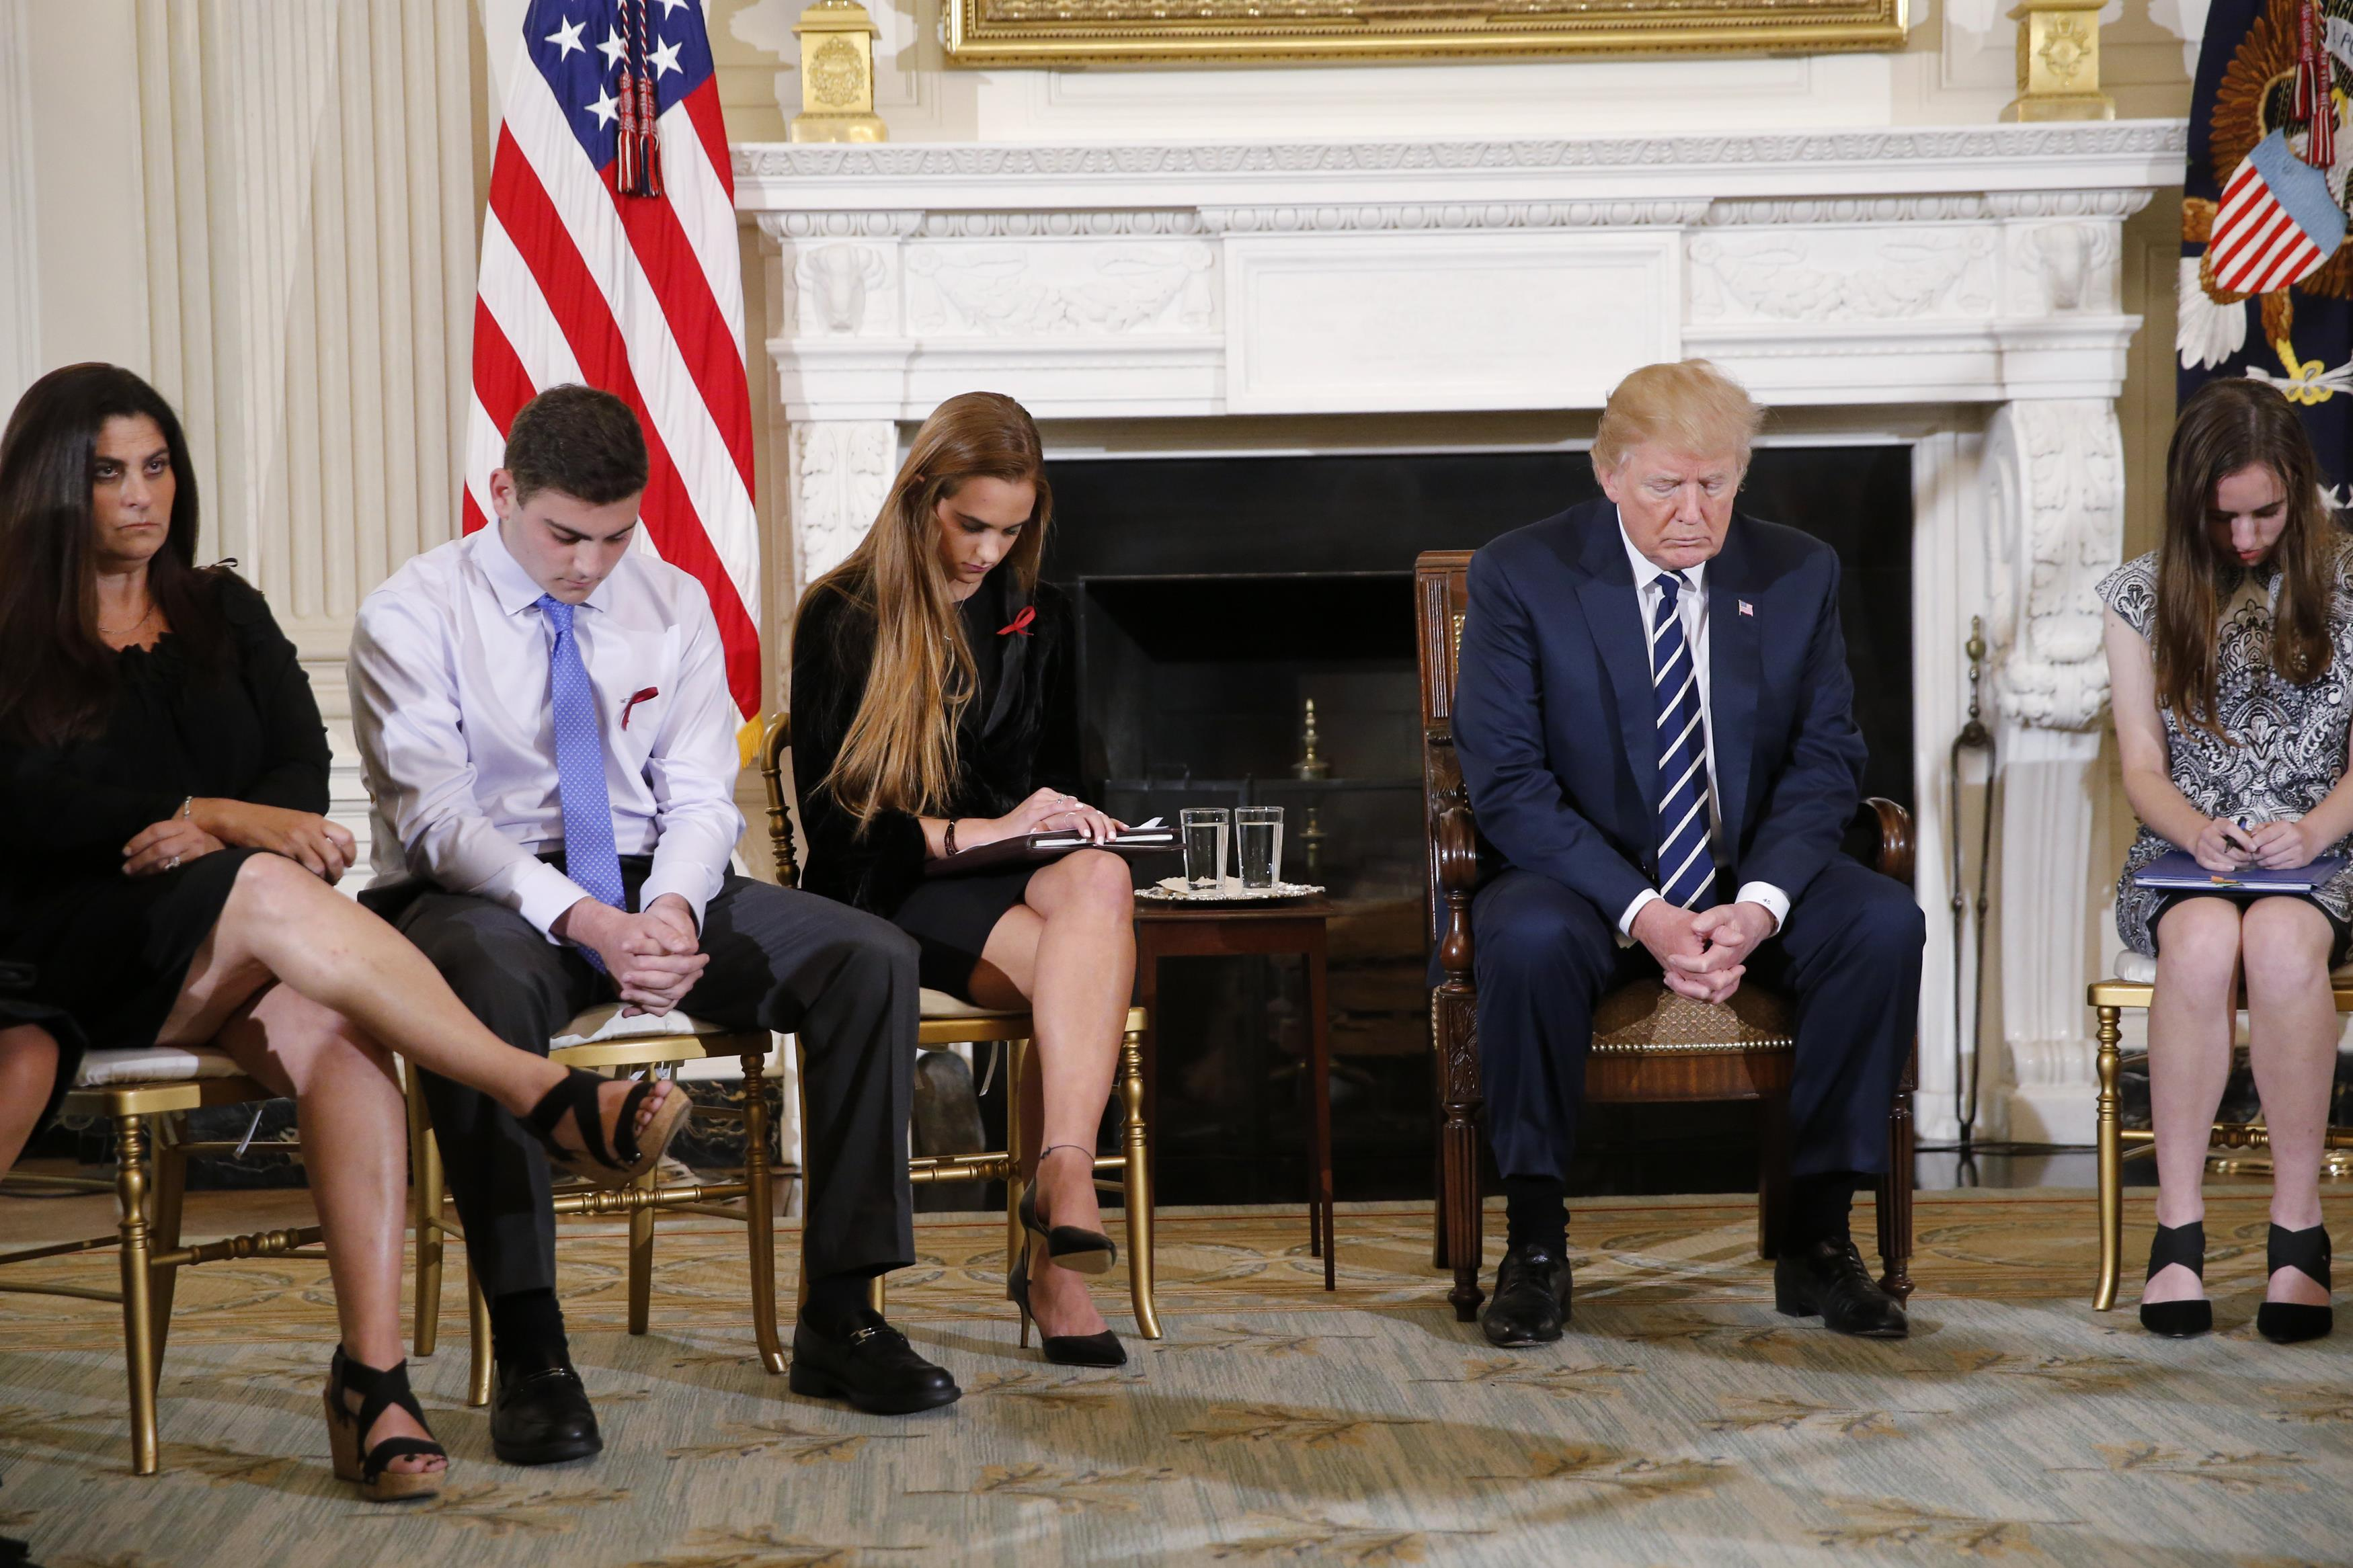 U.S. President Donald Trump bows his head during a prayer as he sits between Marjory Stoneman Douglas High School shooting survivors and students Jonathan Blank, his mother Melissa Blank, Julia Cordover and Carson Abt (R), as the president hosts a listening session with high school students and teachers to discuss school safety at the White House in Washington, U.S., February 21, 2018. Jonathan Ernst